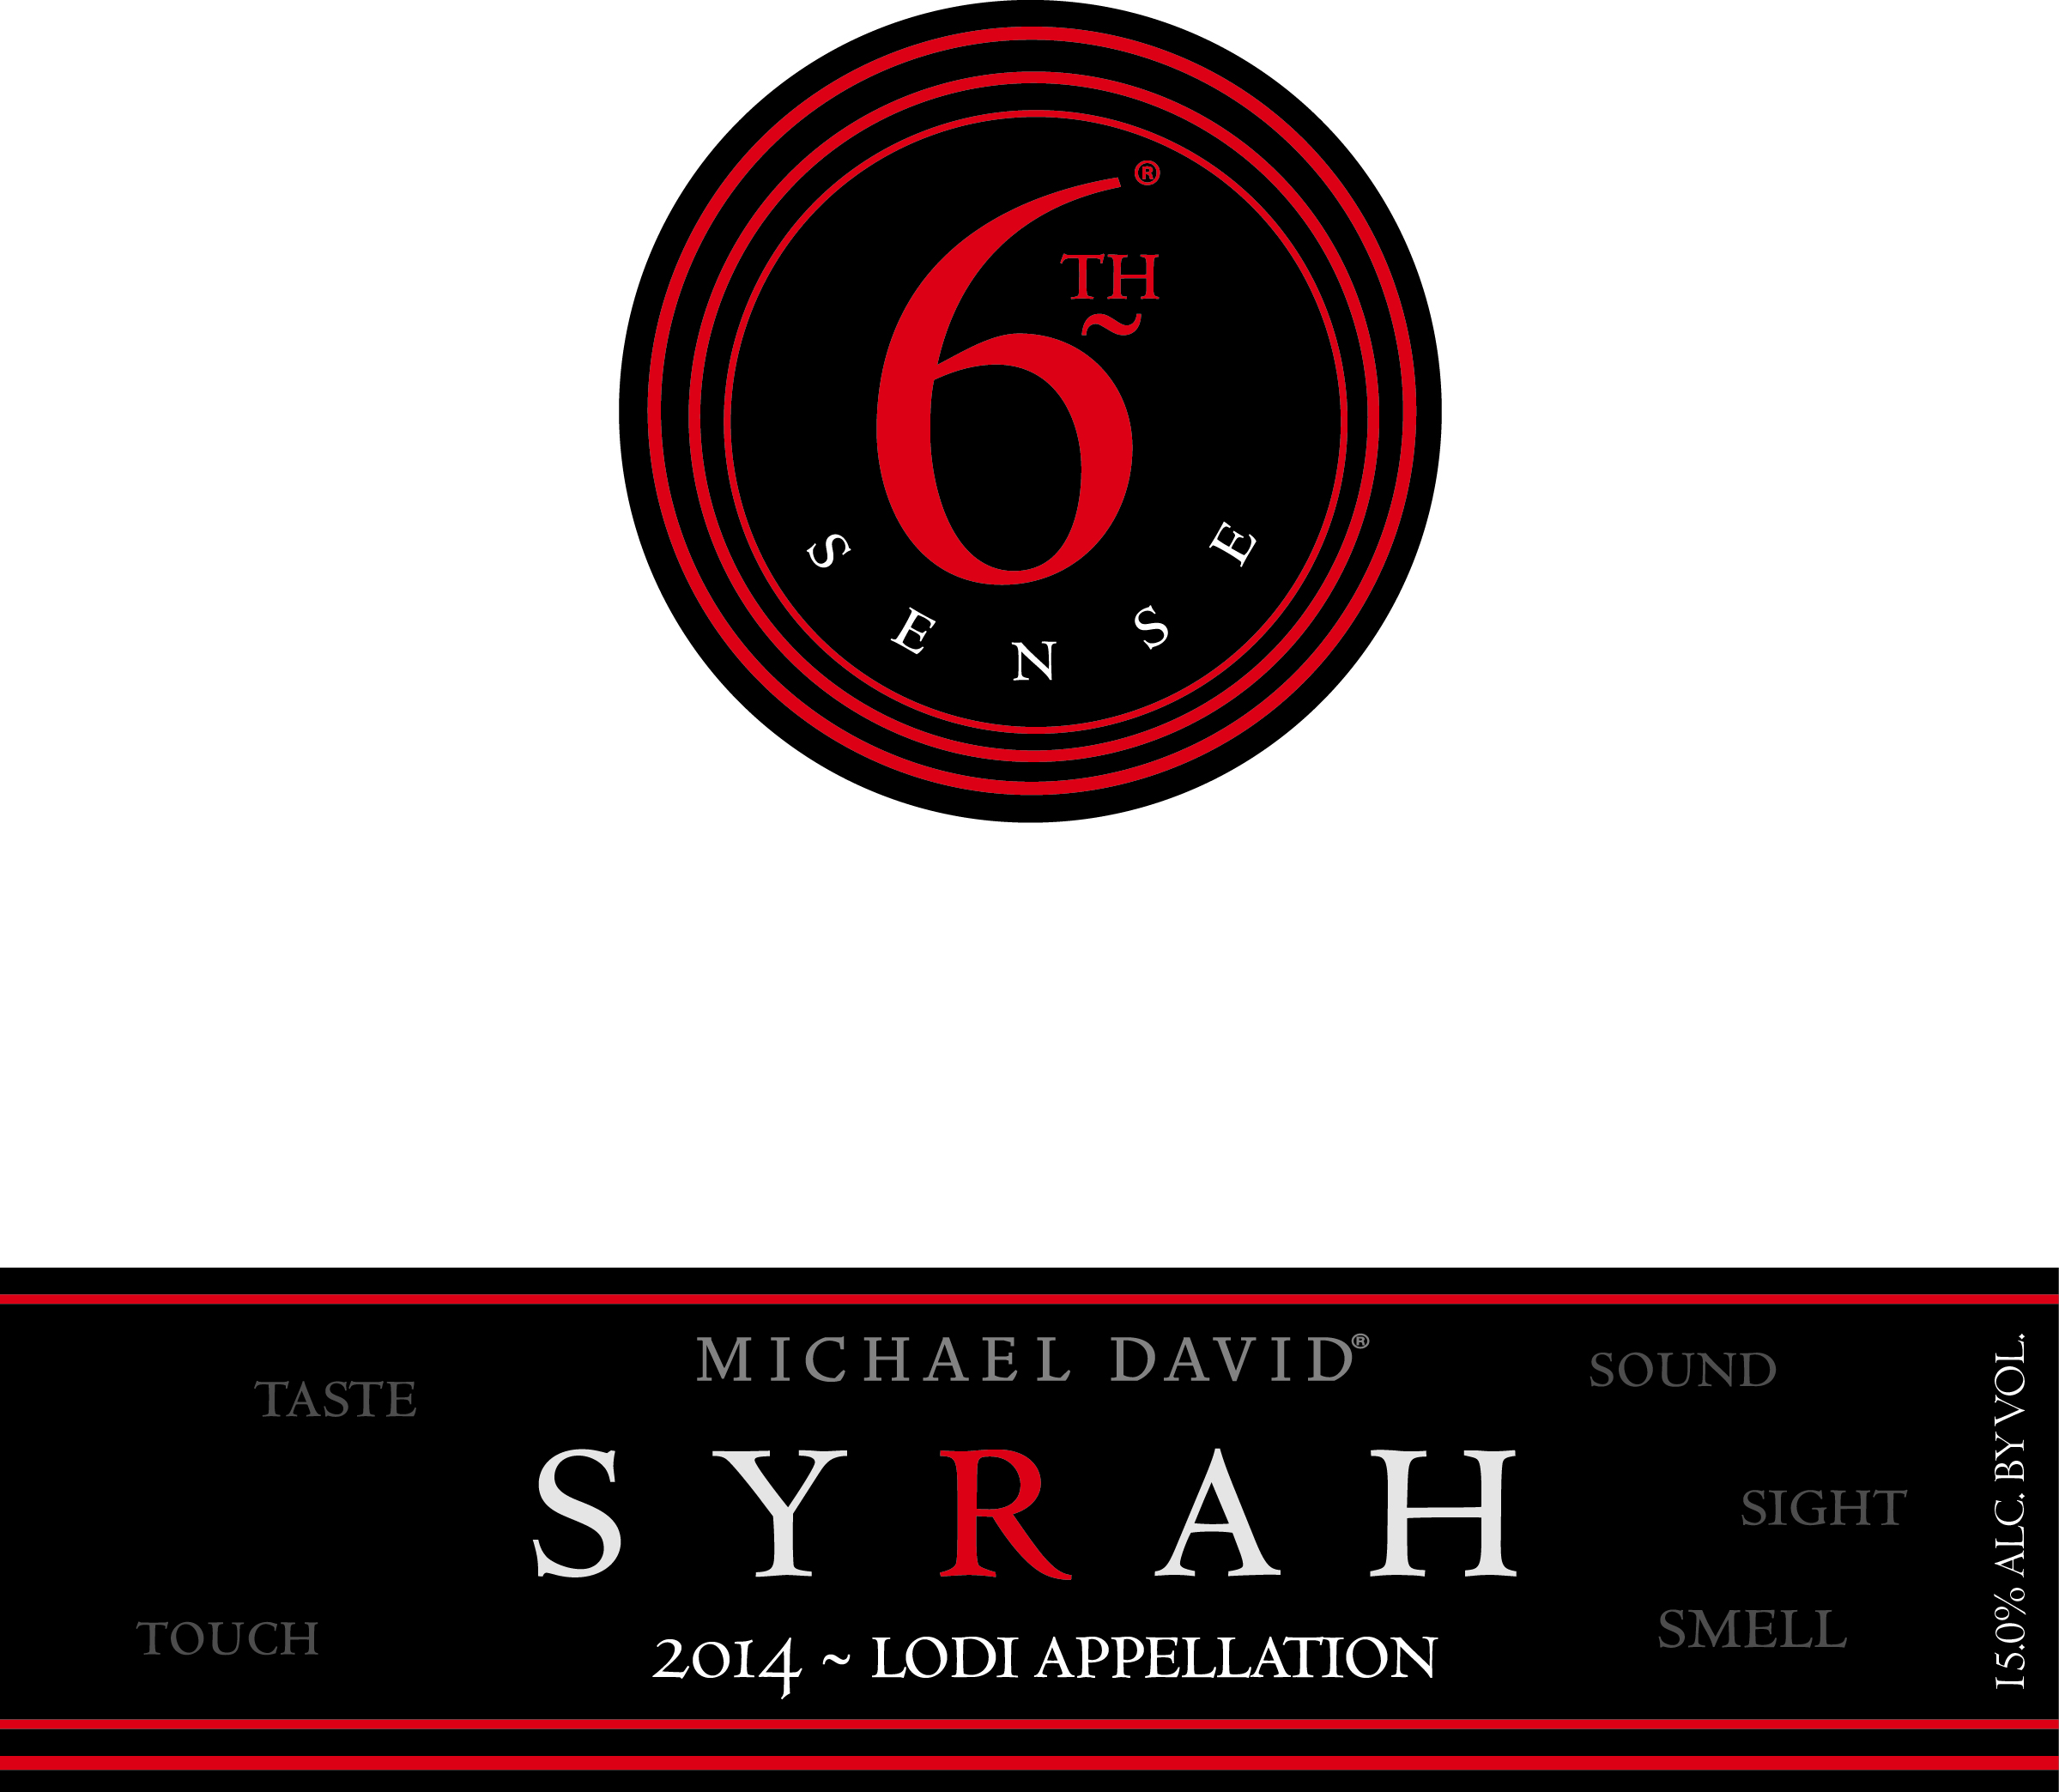 2014 Michael David Syrah 6th Sense